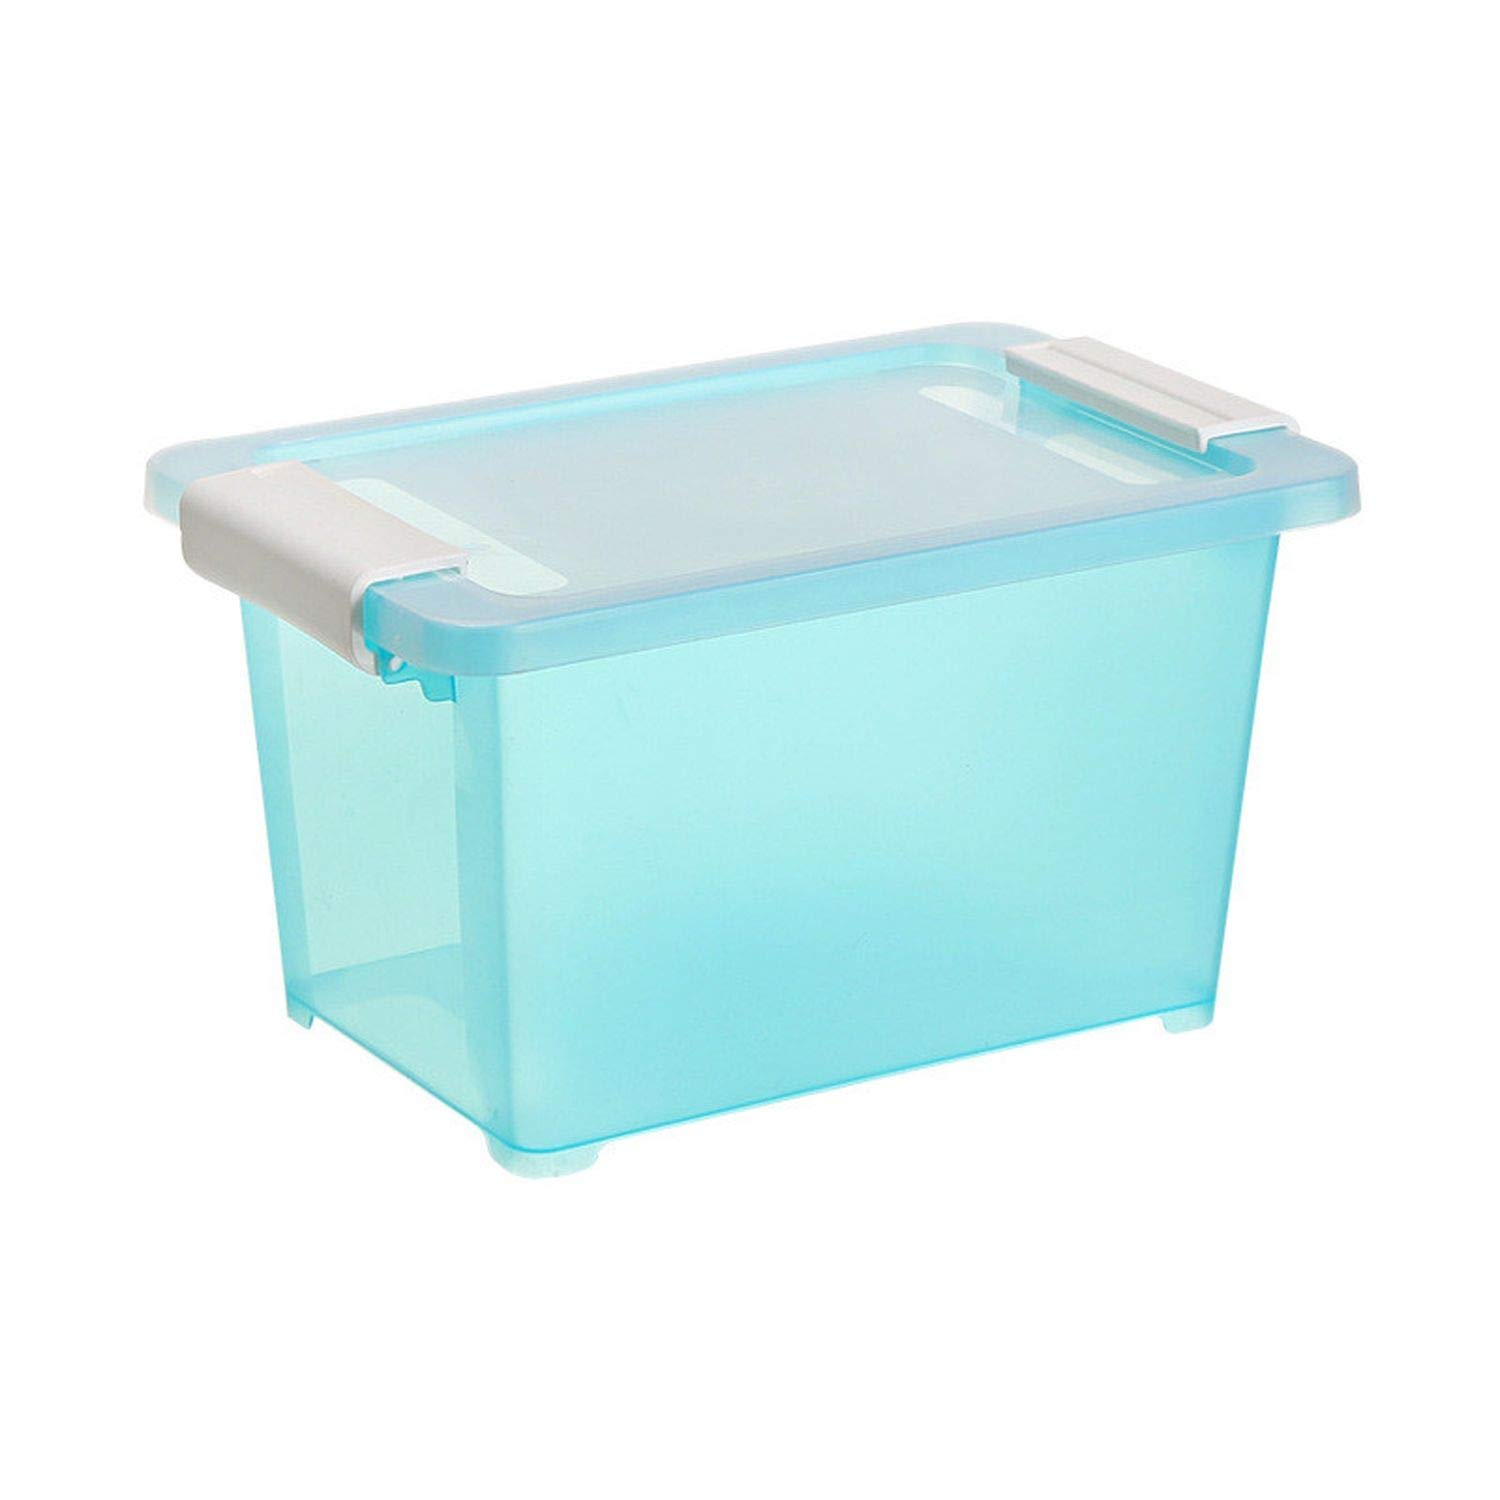 Collocation-Online Multifunction Plastic Home Storage Box Stationery Laundry Toys Fold Picnic Pouch Storage Box,Blue